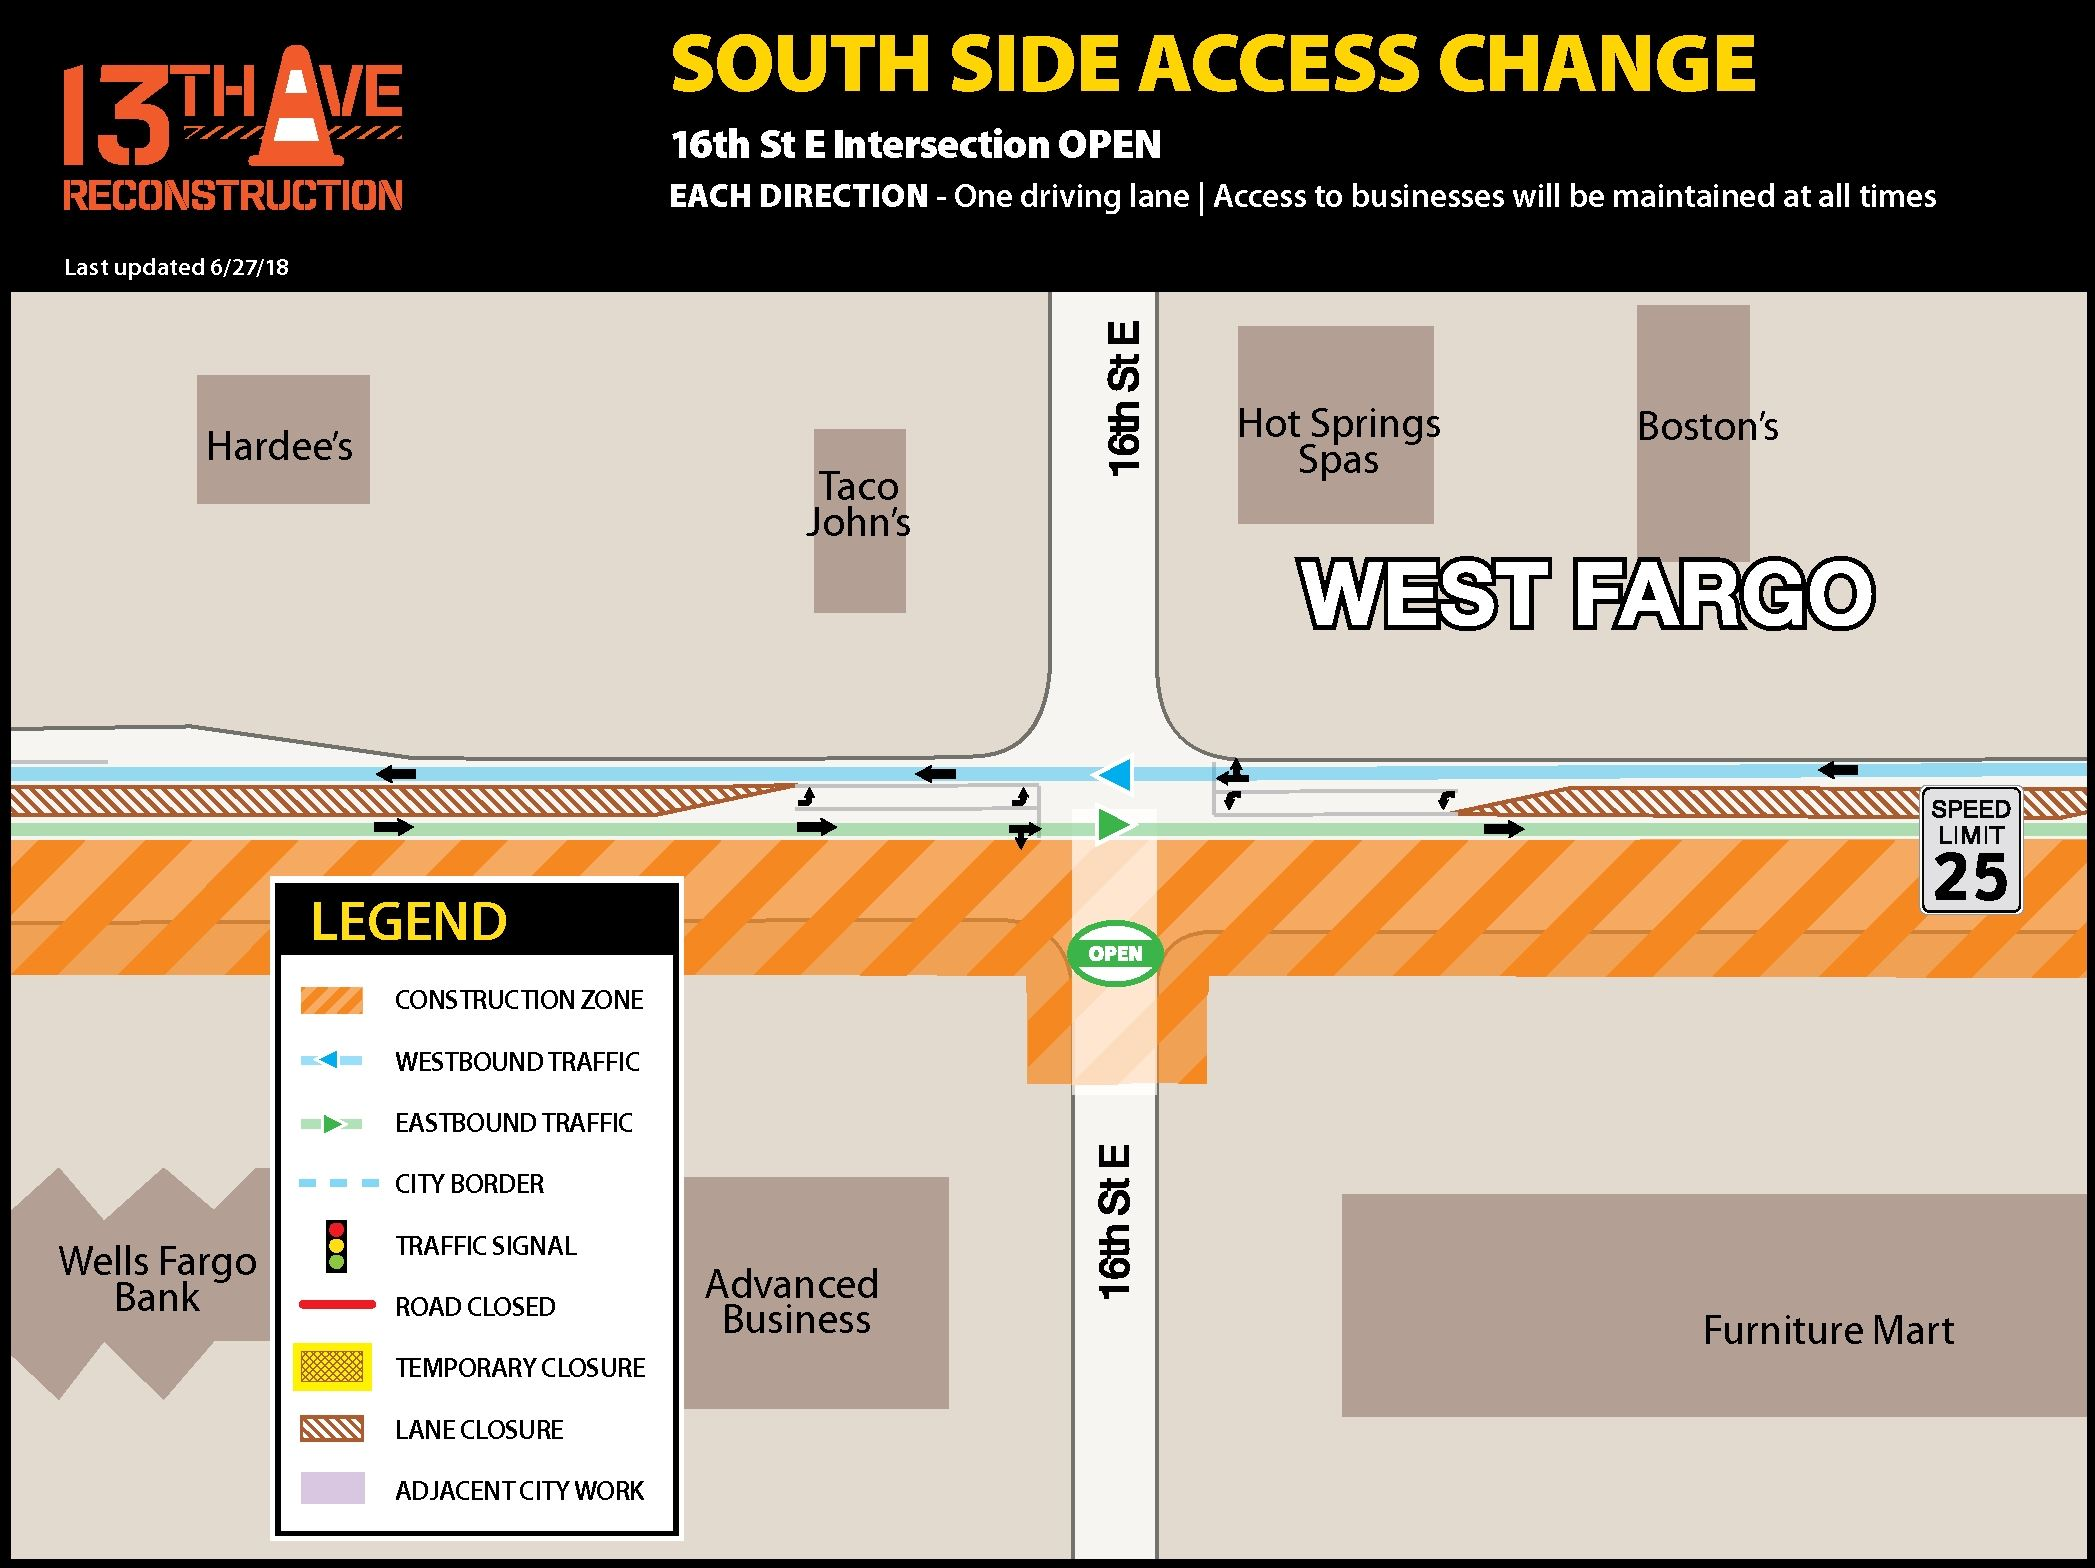 South side of 16th Street E. and 13th Avenue E. intersection reopening